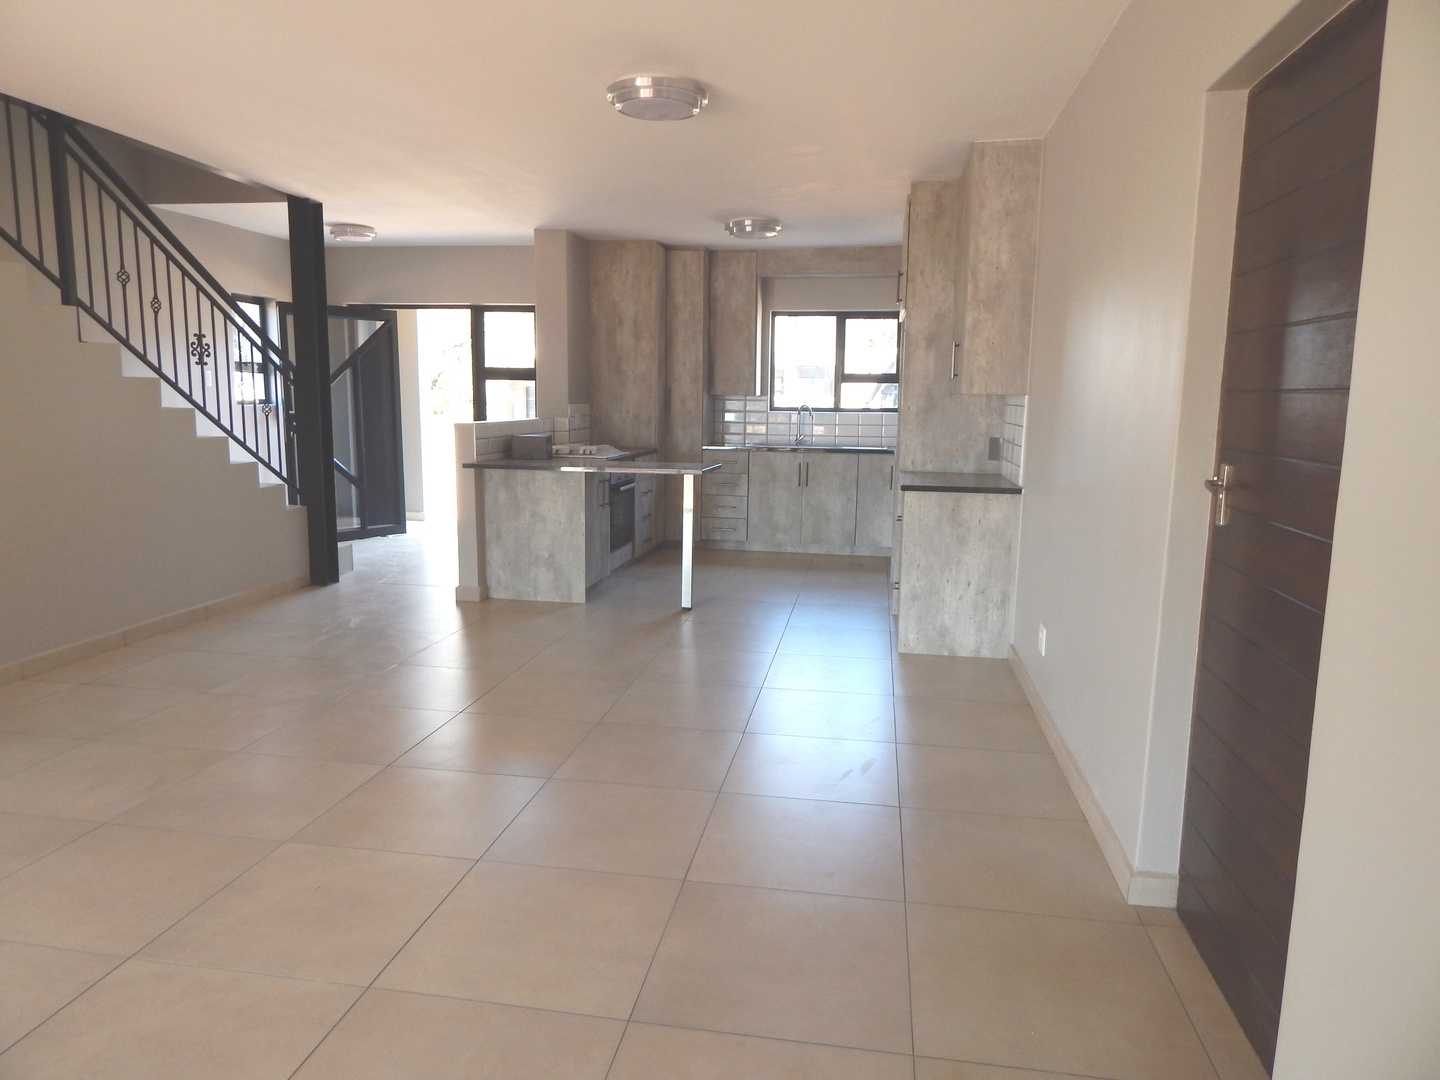 House in Leloko - Open plan living area to kitchen